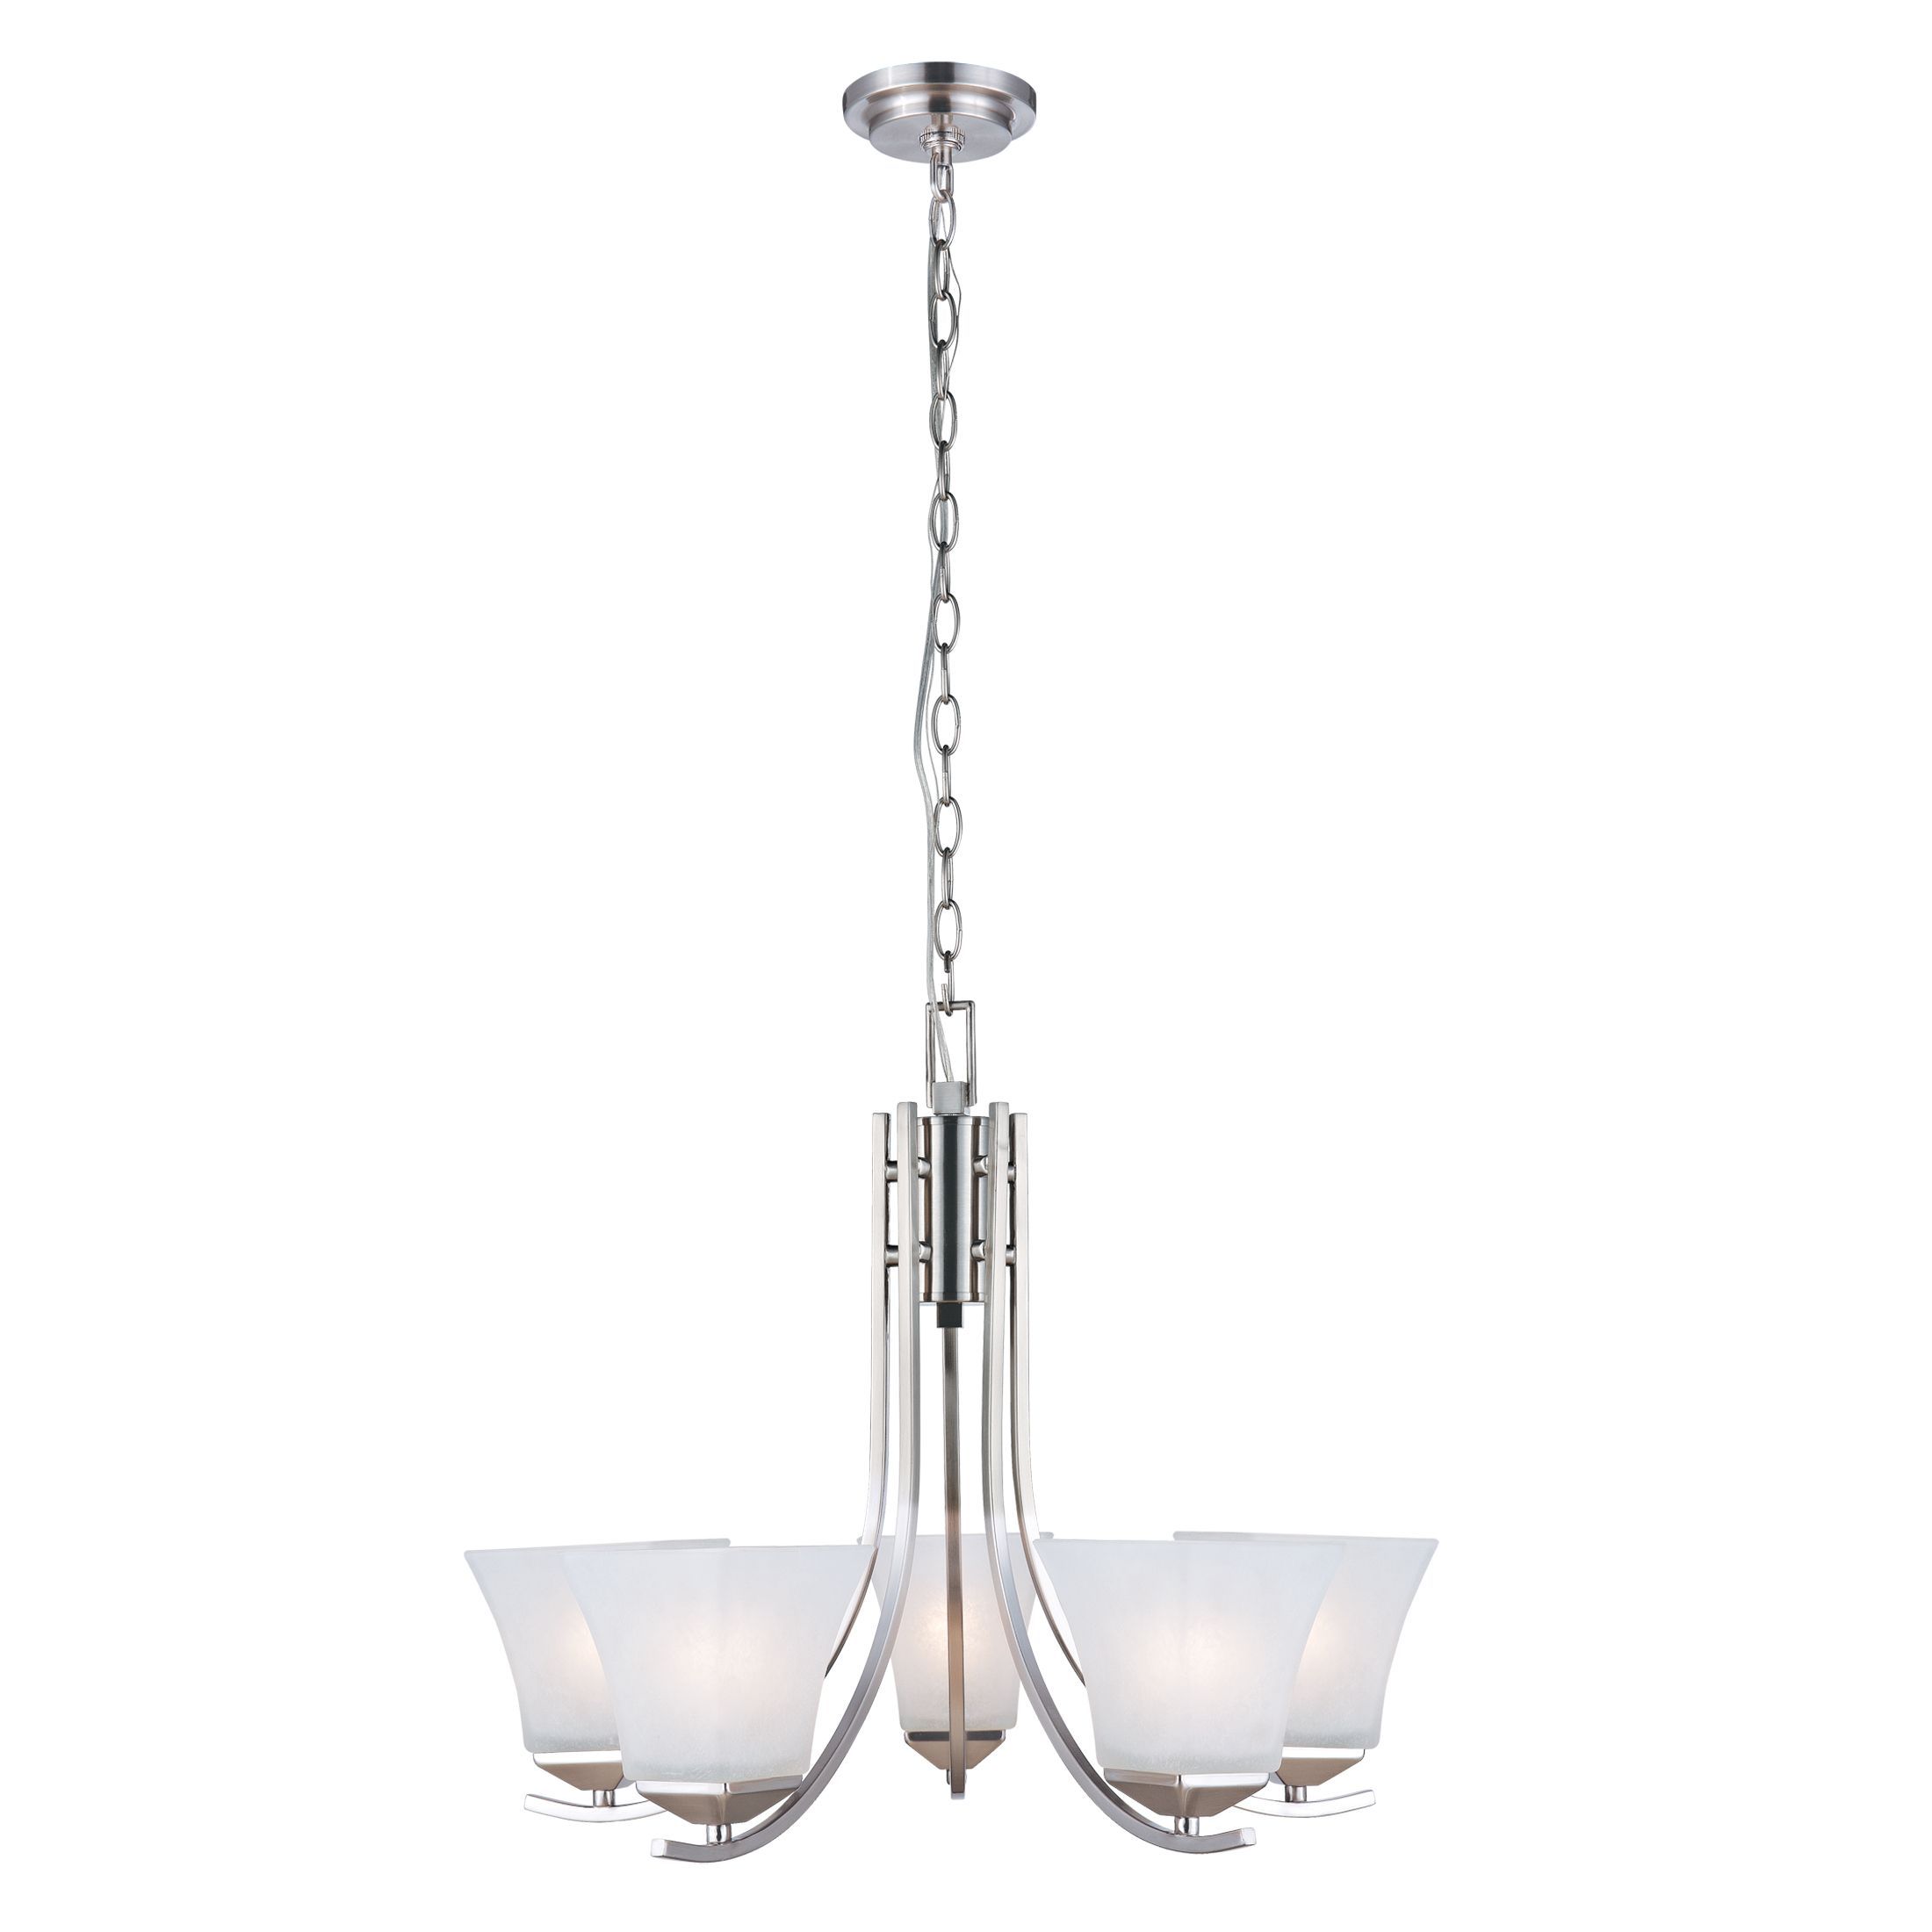 Torino 5-Light Chandelier, Satin Nickel #514836